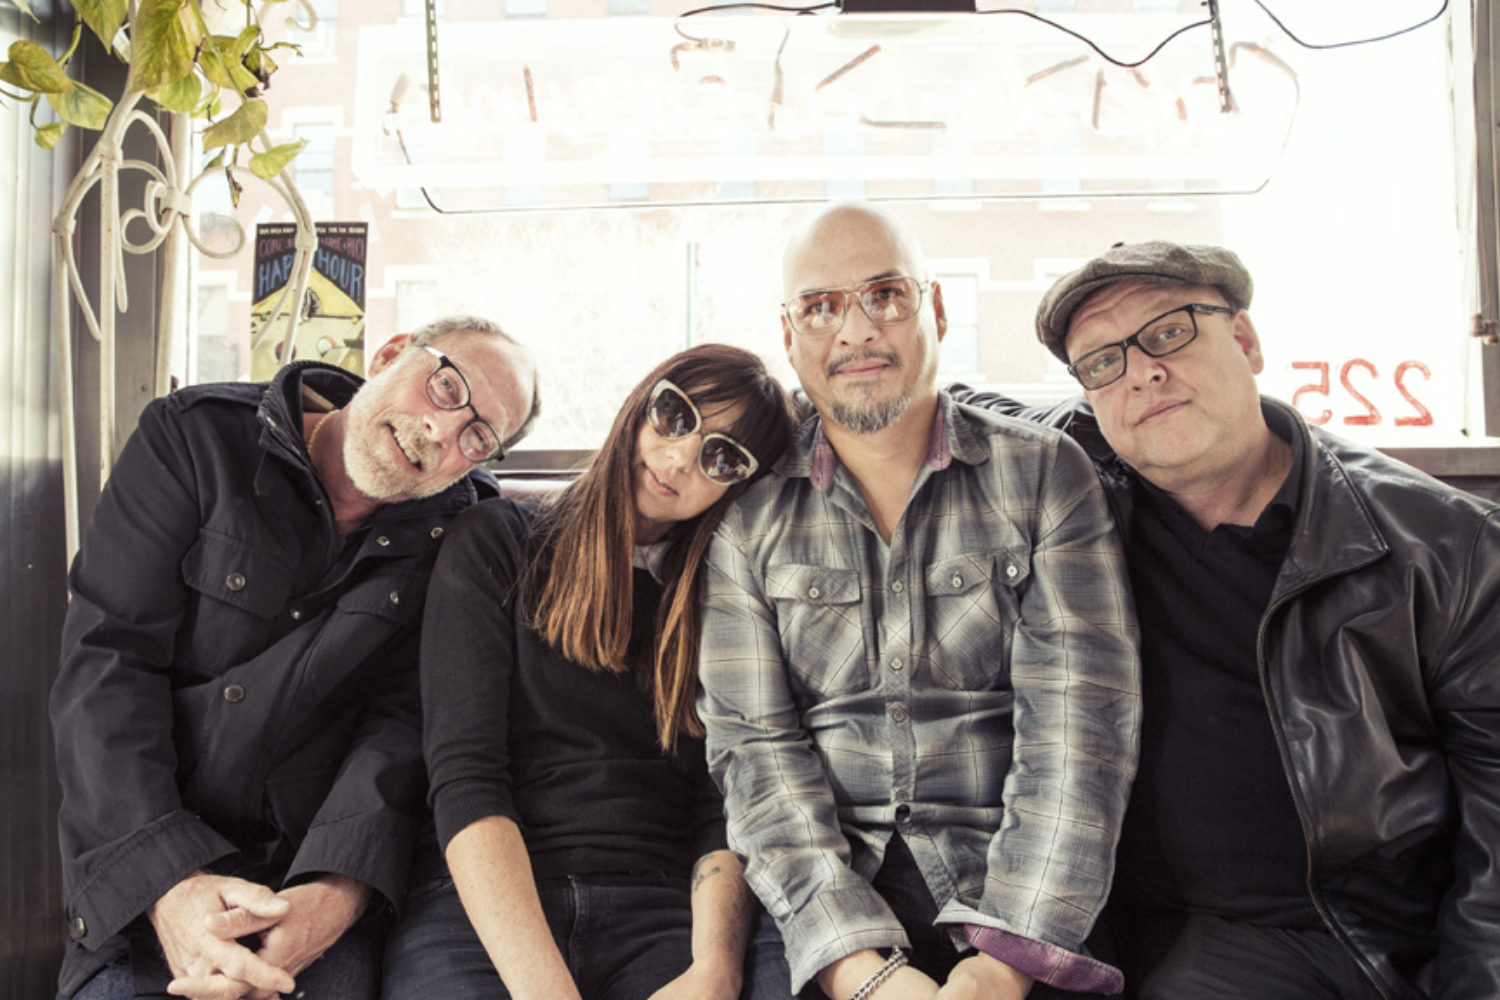 Stream Pixies' 'Head Carrier' in full